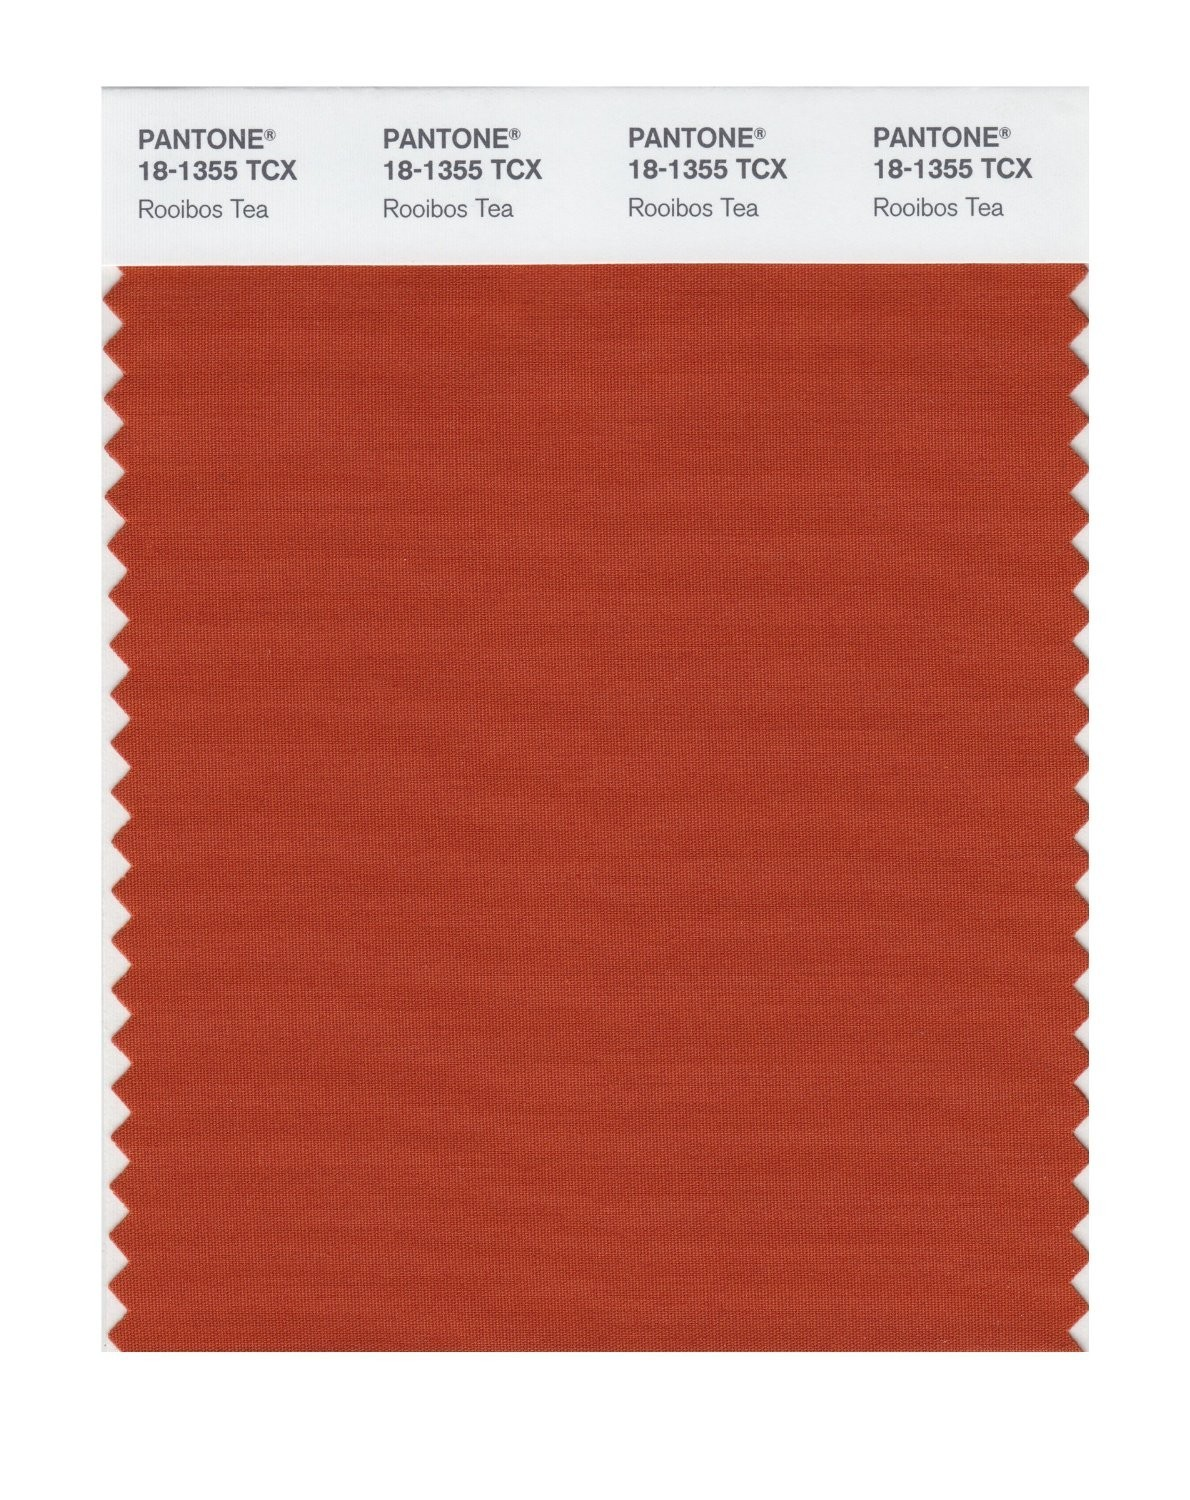 Pantone 18-1355 TCX Swatch Card Rooibos Tea